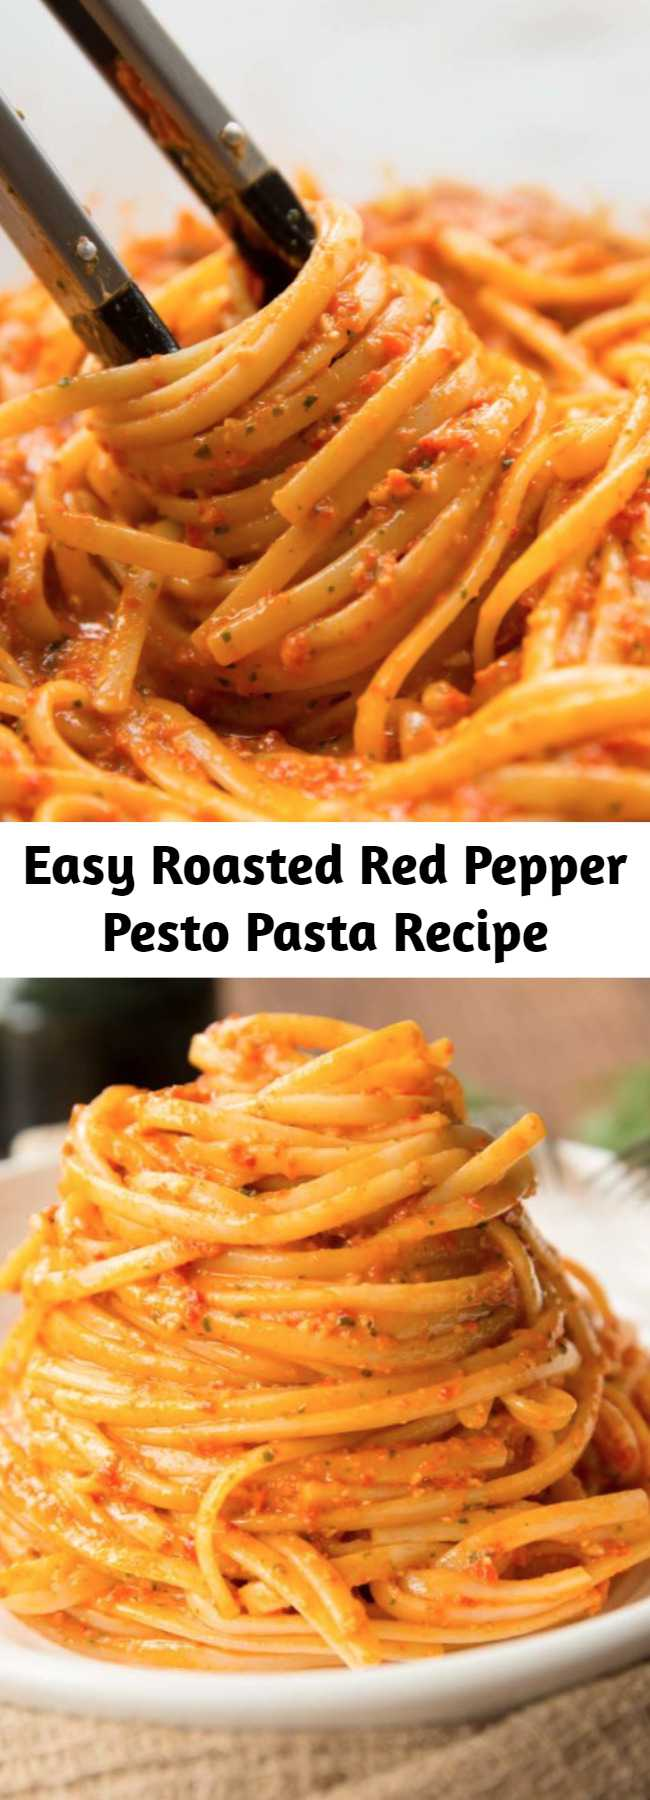 Easy Roasted Red Pepper Pesto Pasta Recipe - This Roasted Red Pepper Pesto Pasta is bursting with flavour and goes down in just 15mins! #redpepper #bellpepper #pesto #pasta